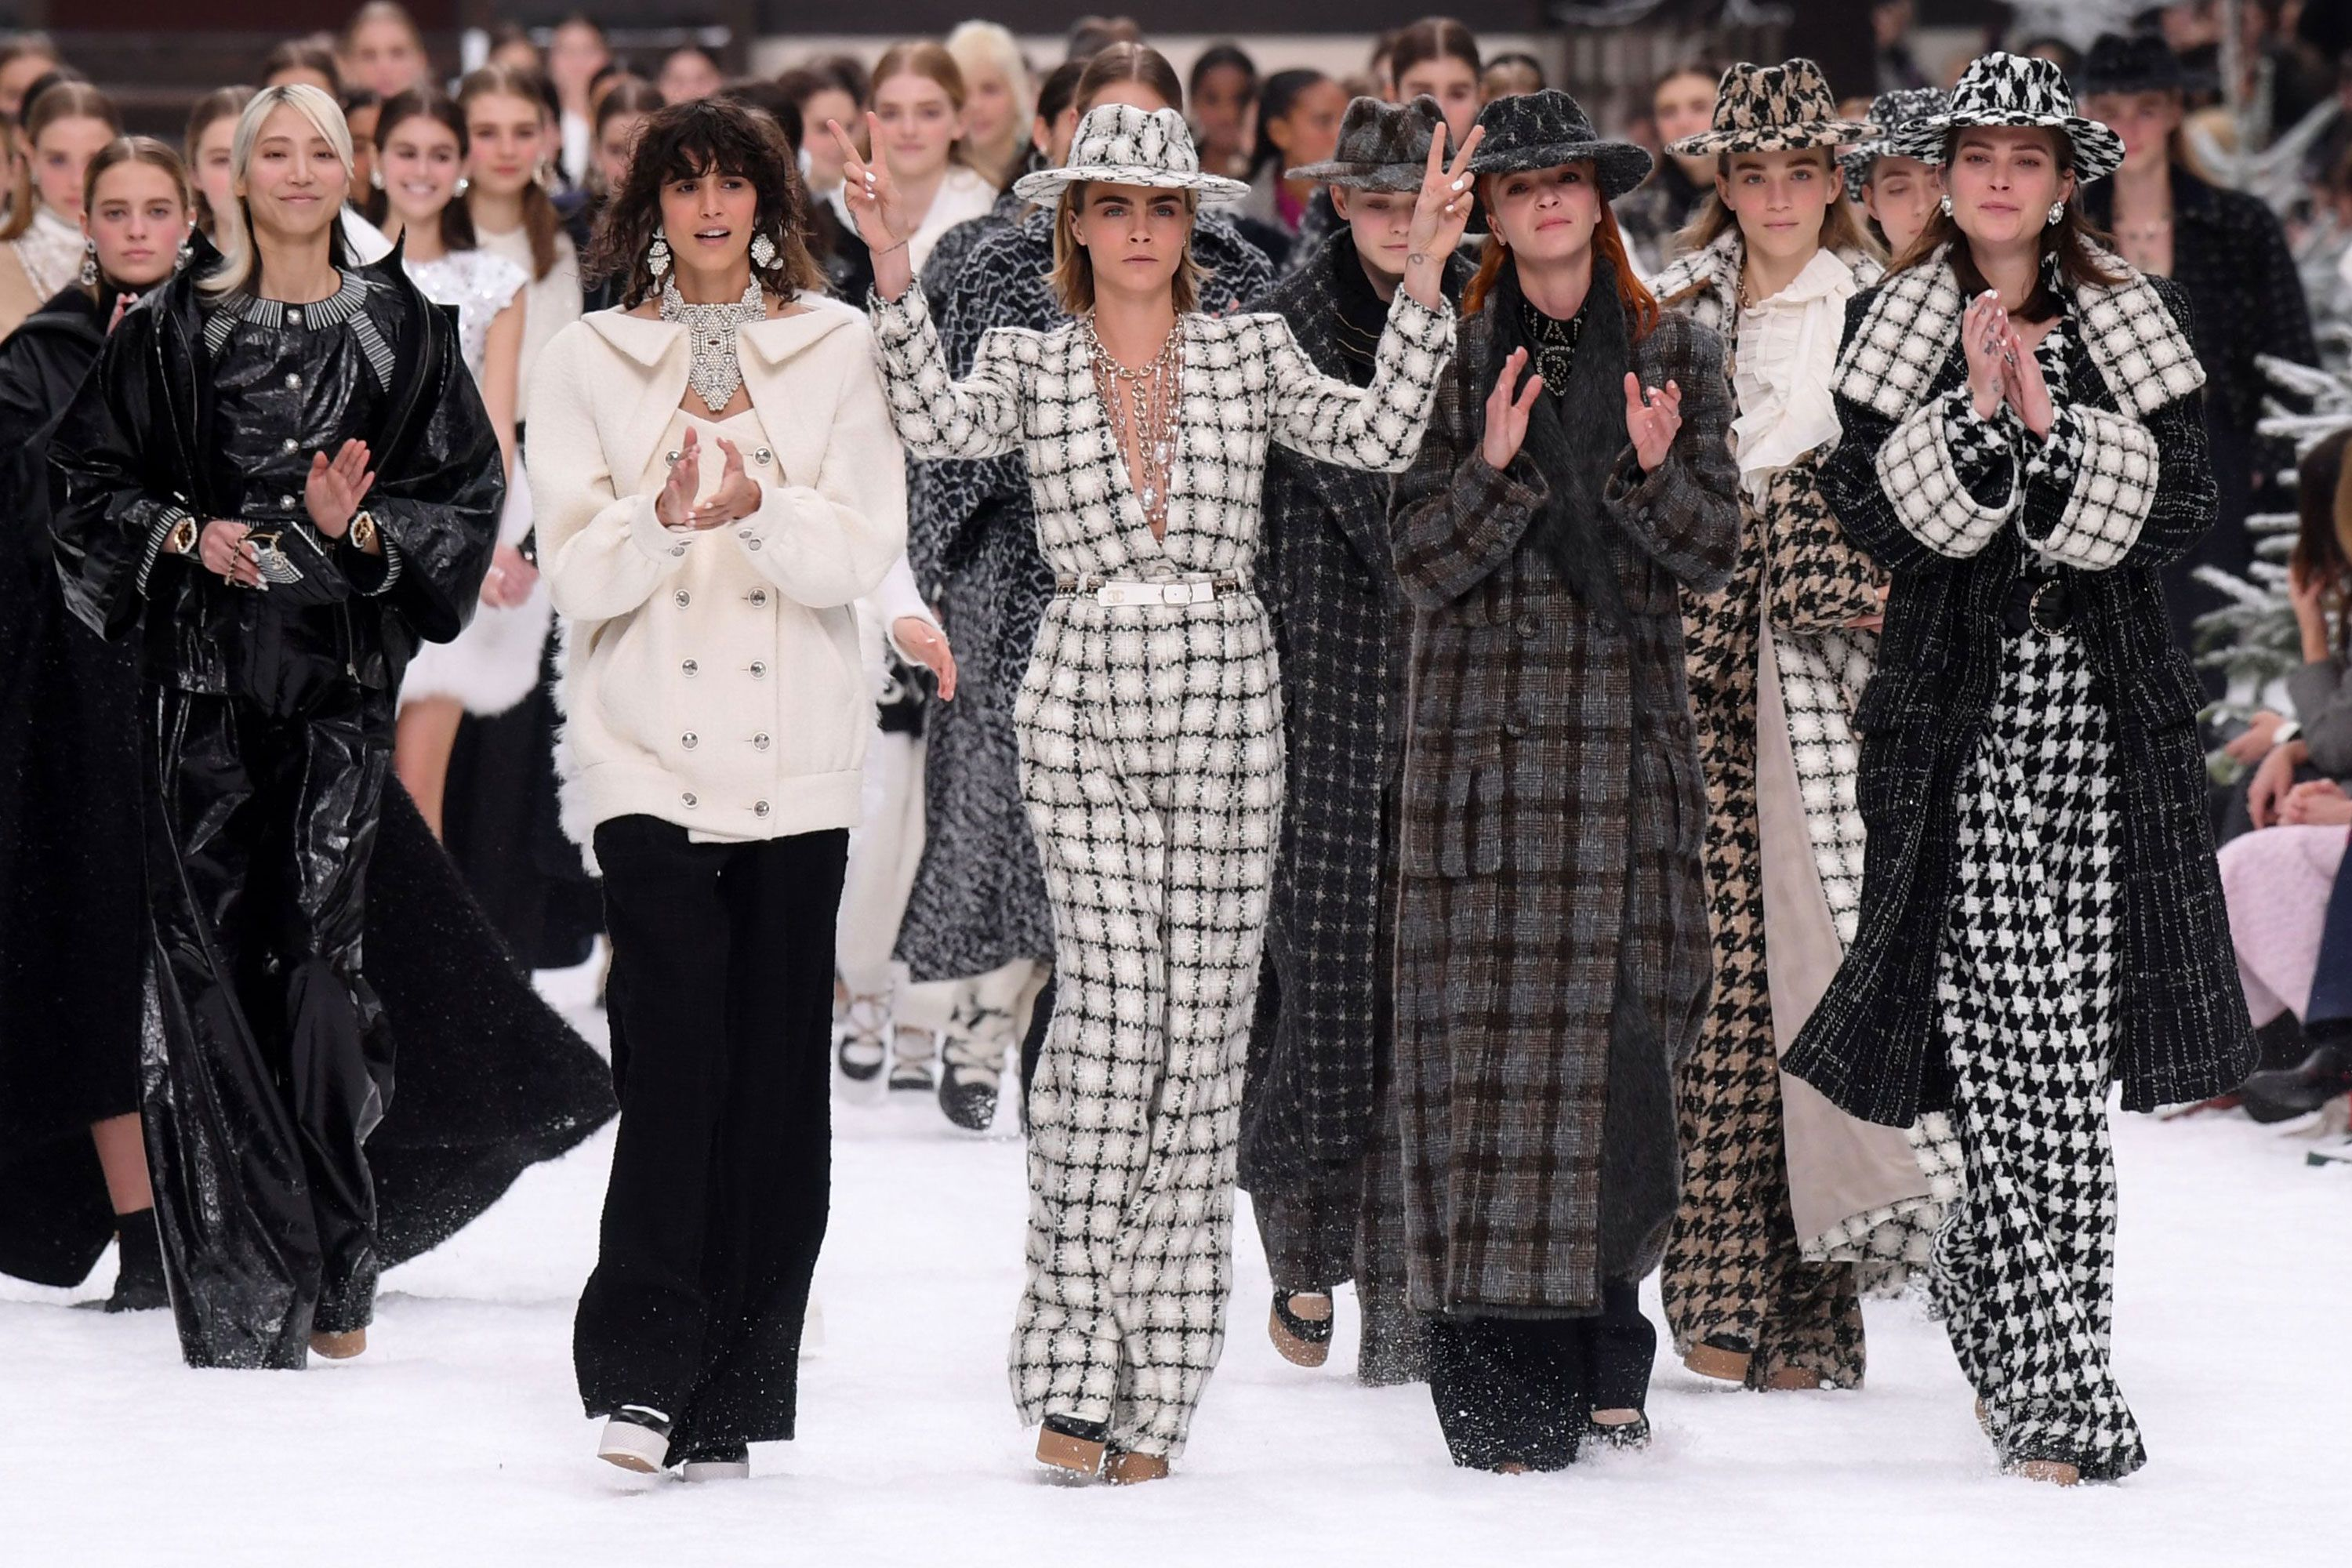 Chanel made £9 billion in Lagerfeld's final year at the fashion house